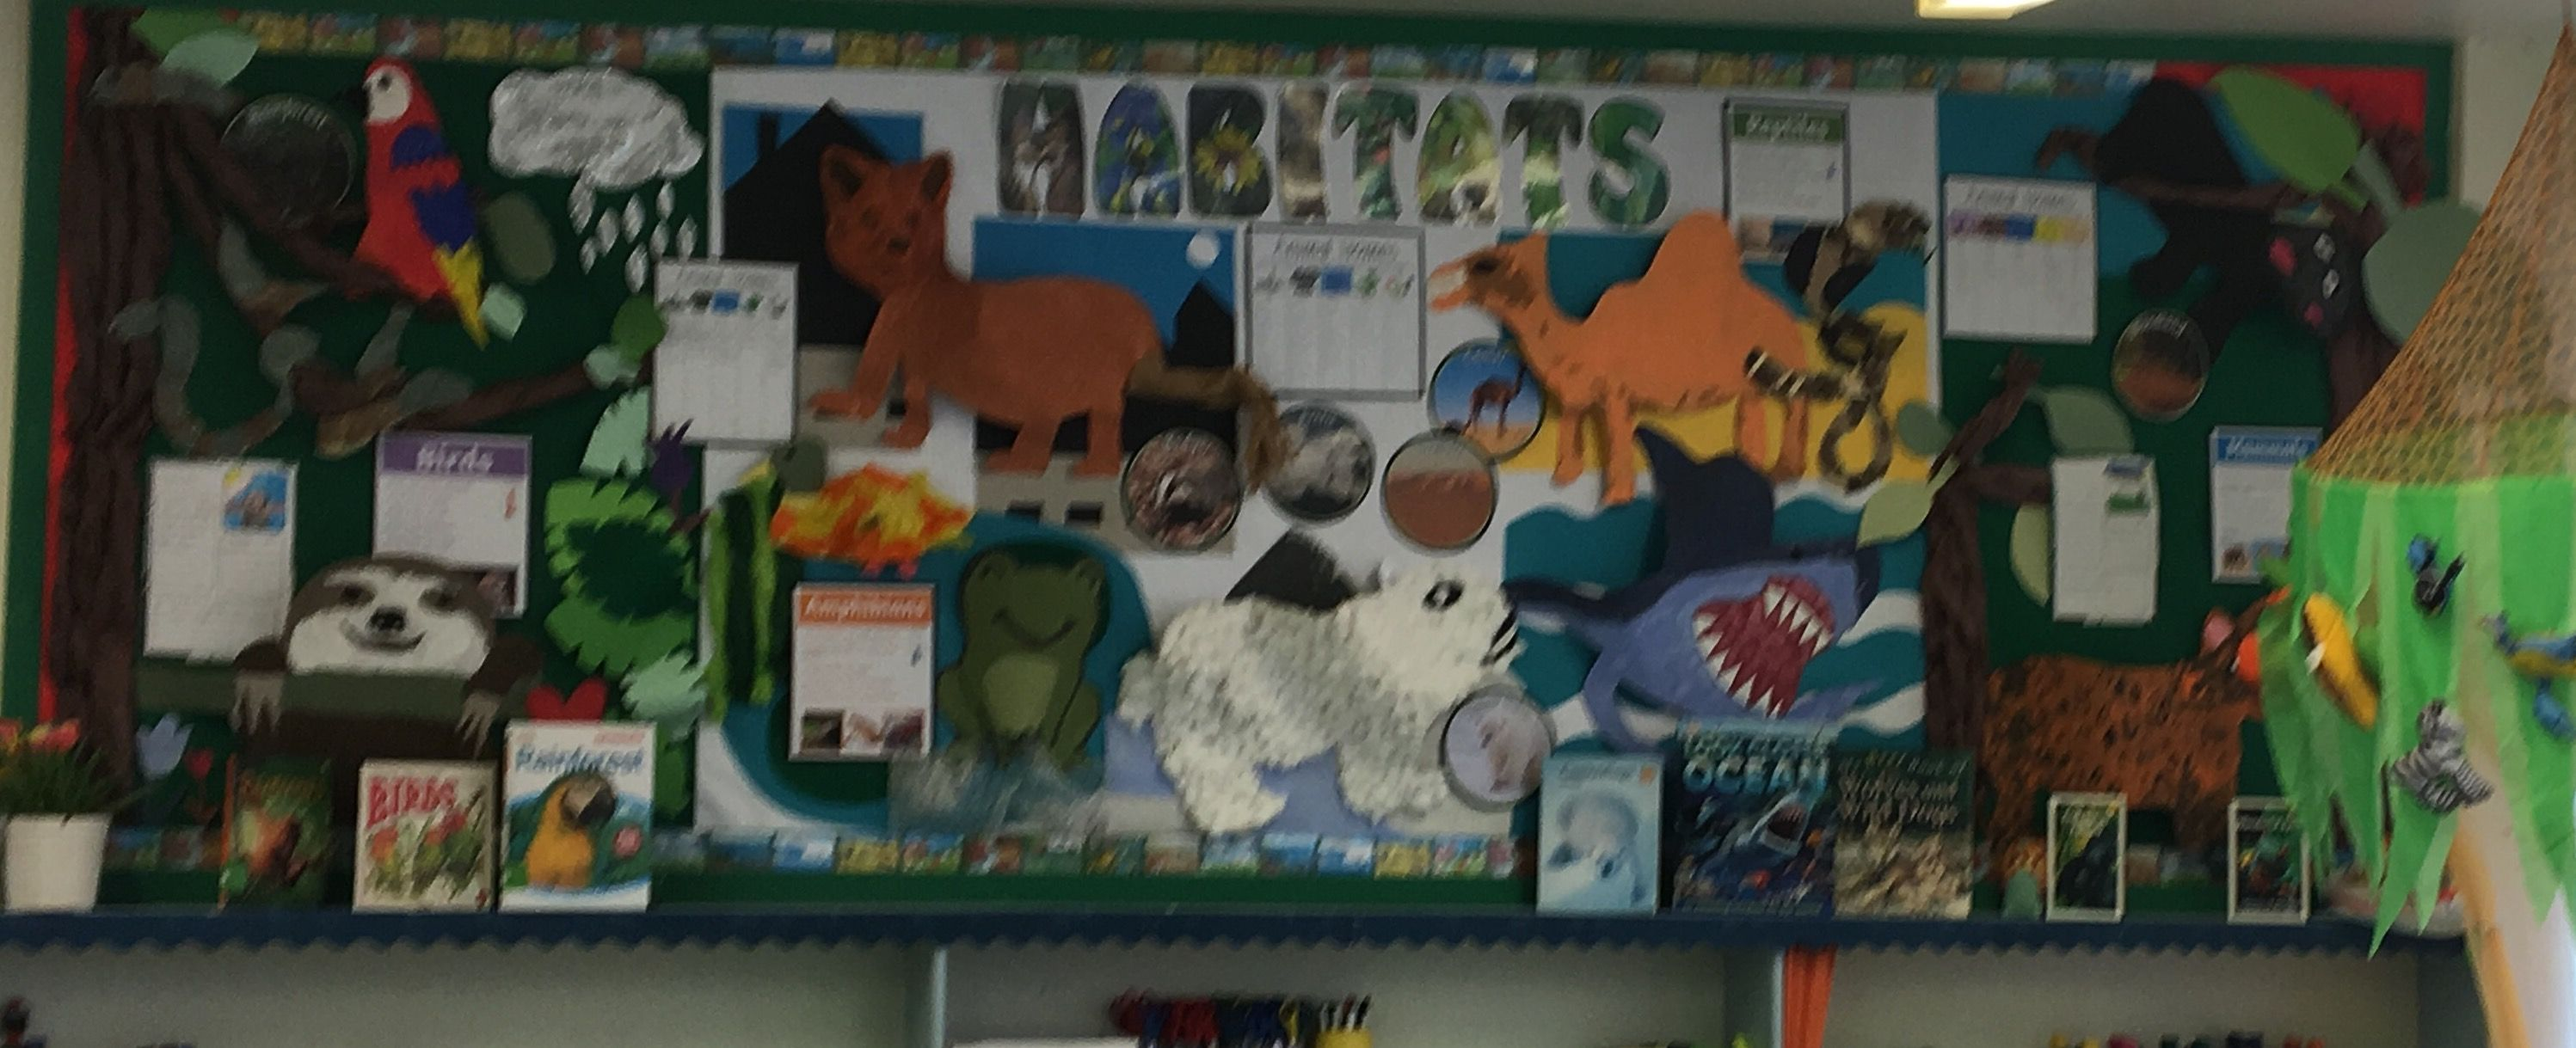 Habitats Ks1 Display